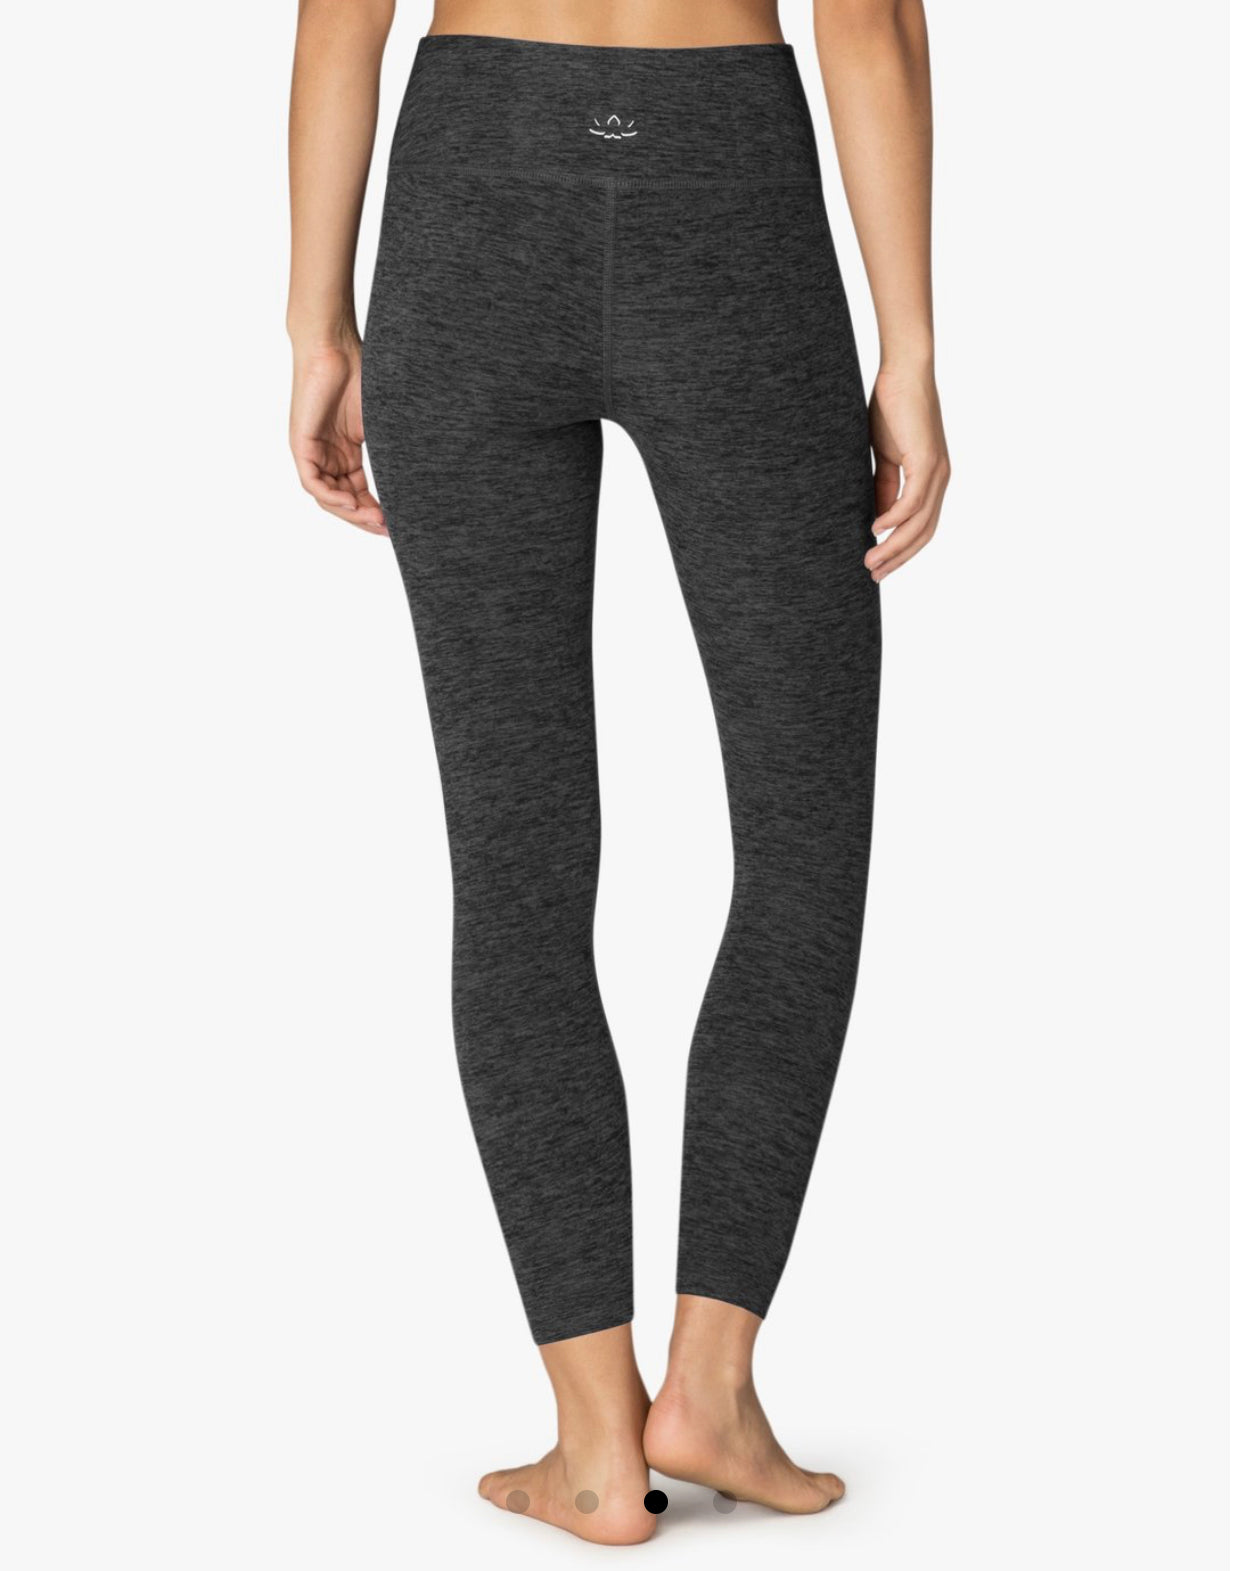 Beyond Yoga Spacedye Caught In The Midi High Waisted Legging in Black Charcoal